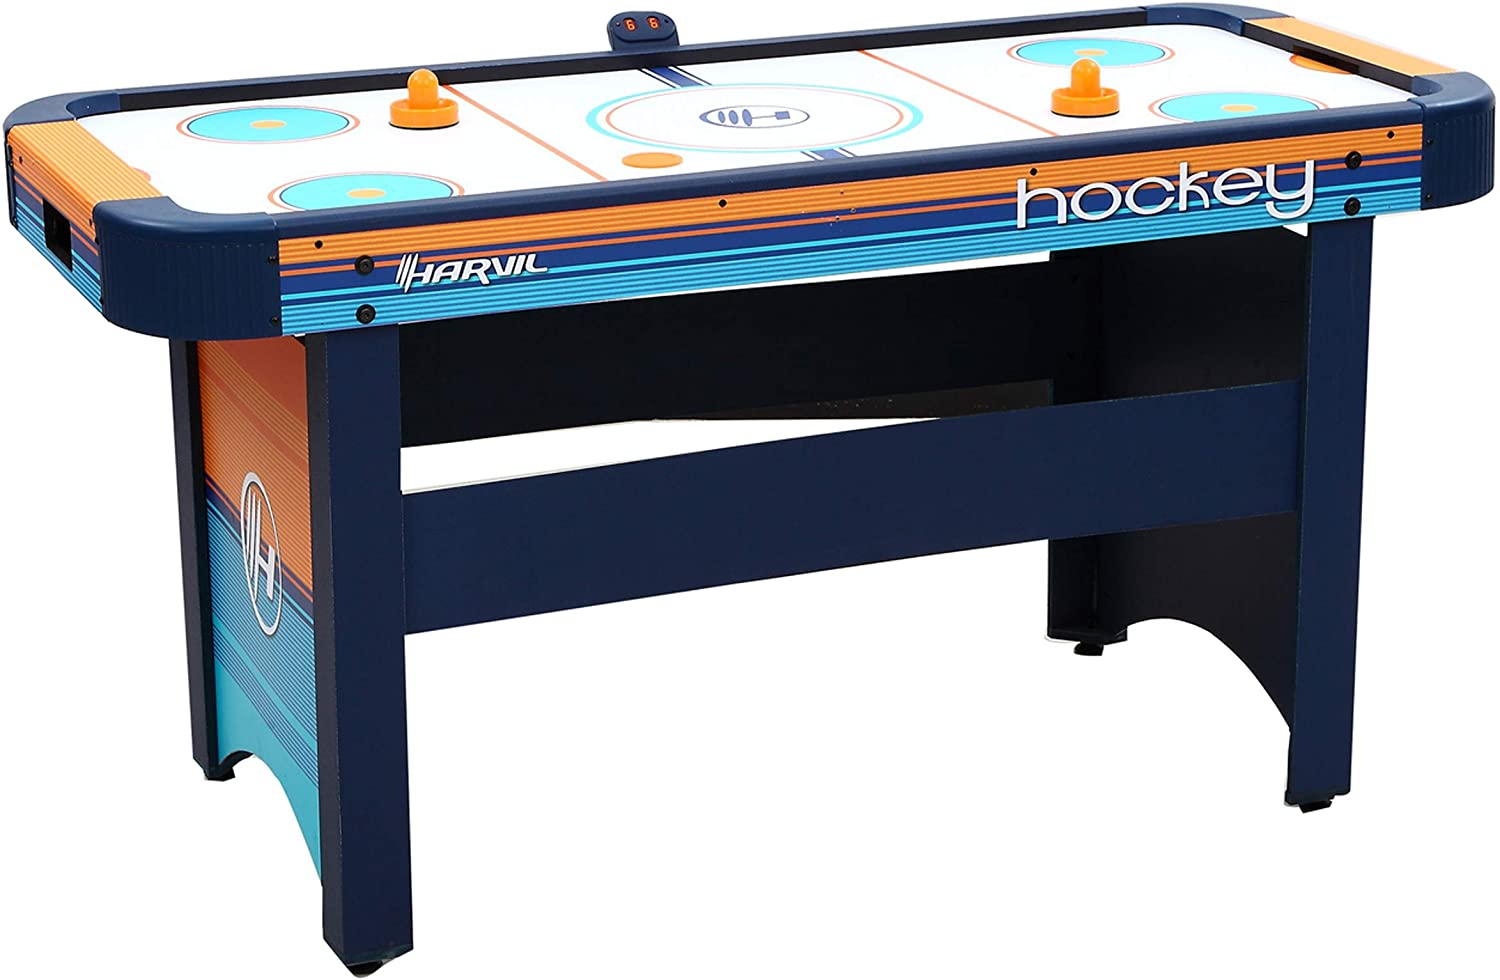 GHarvil 5 Foot Air Hockey Table